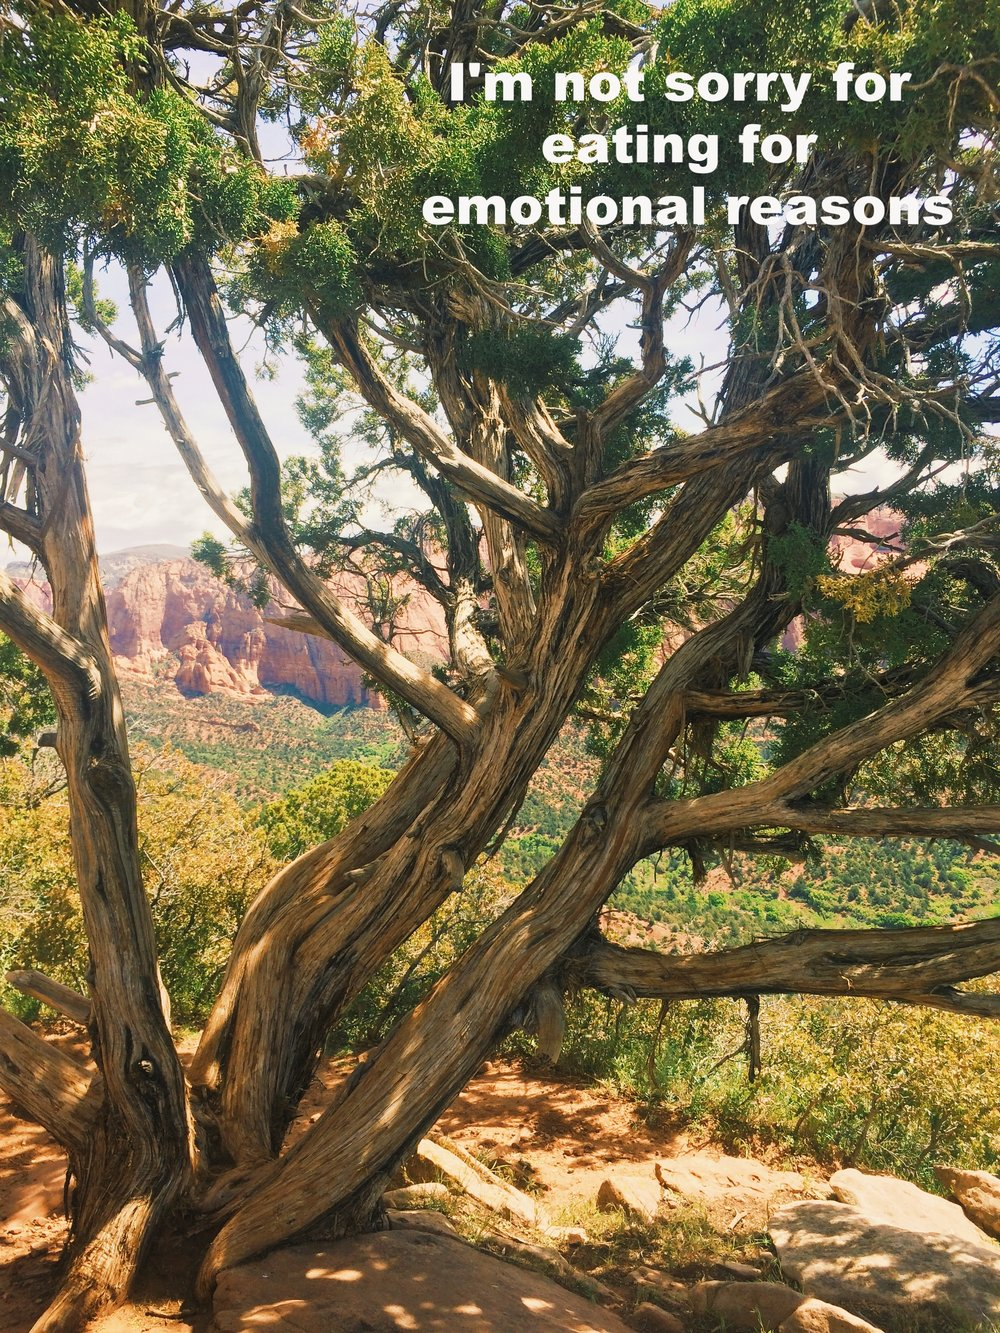 """Anonymous June 13 2017 Reddish mountains and lush trees show through the twisted low branches of a short tree atop another mountain. Light shines through the branches and leaves, creating shadows that dance on the rocks and earth below.""""I'm not sorry for eating for emotional reasons"""" is overlaid."""